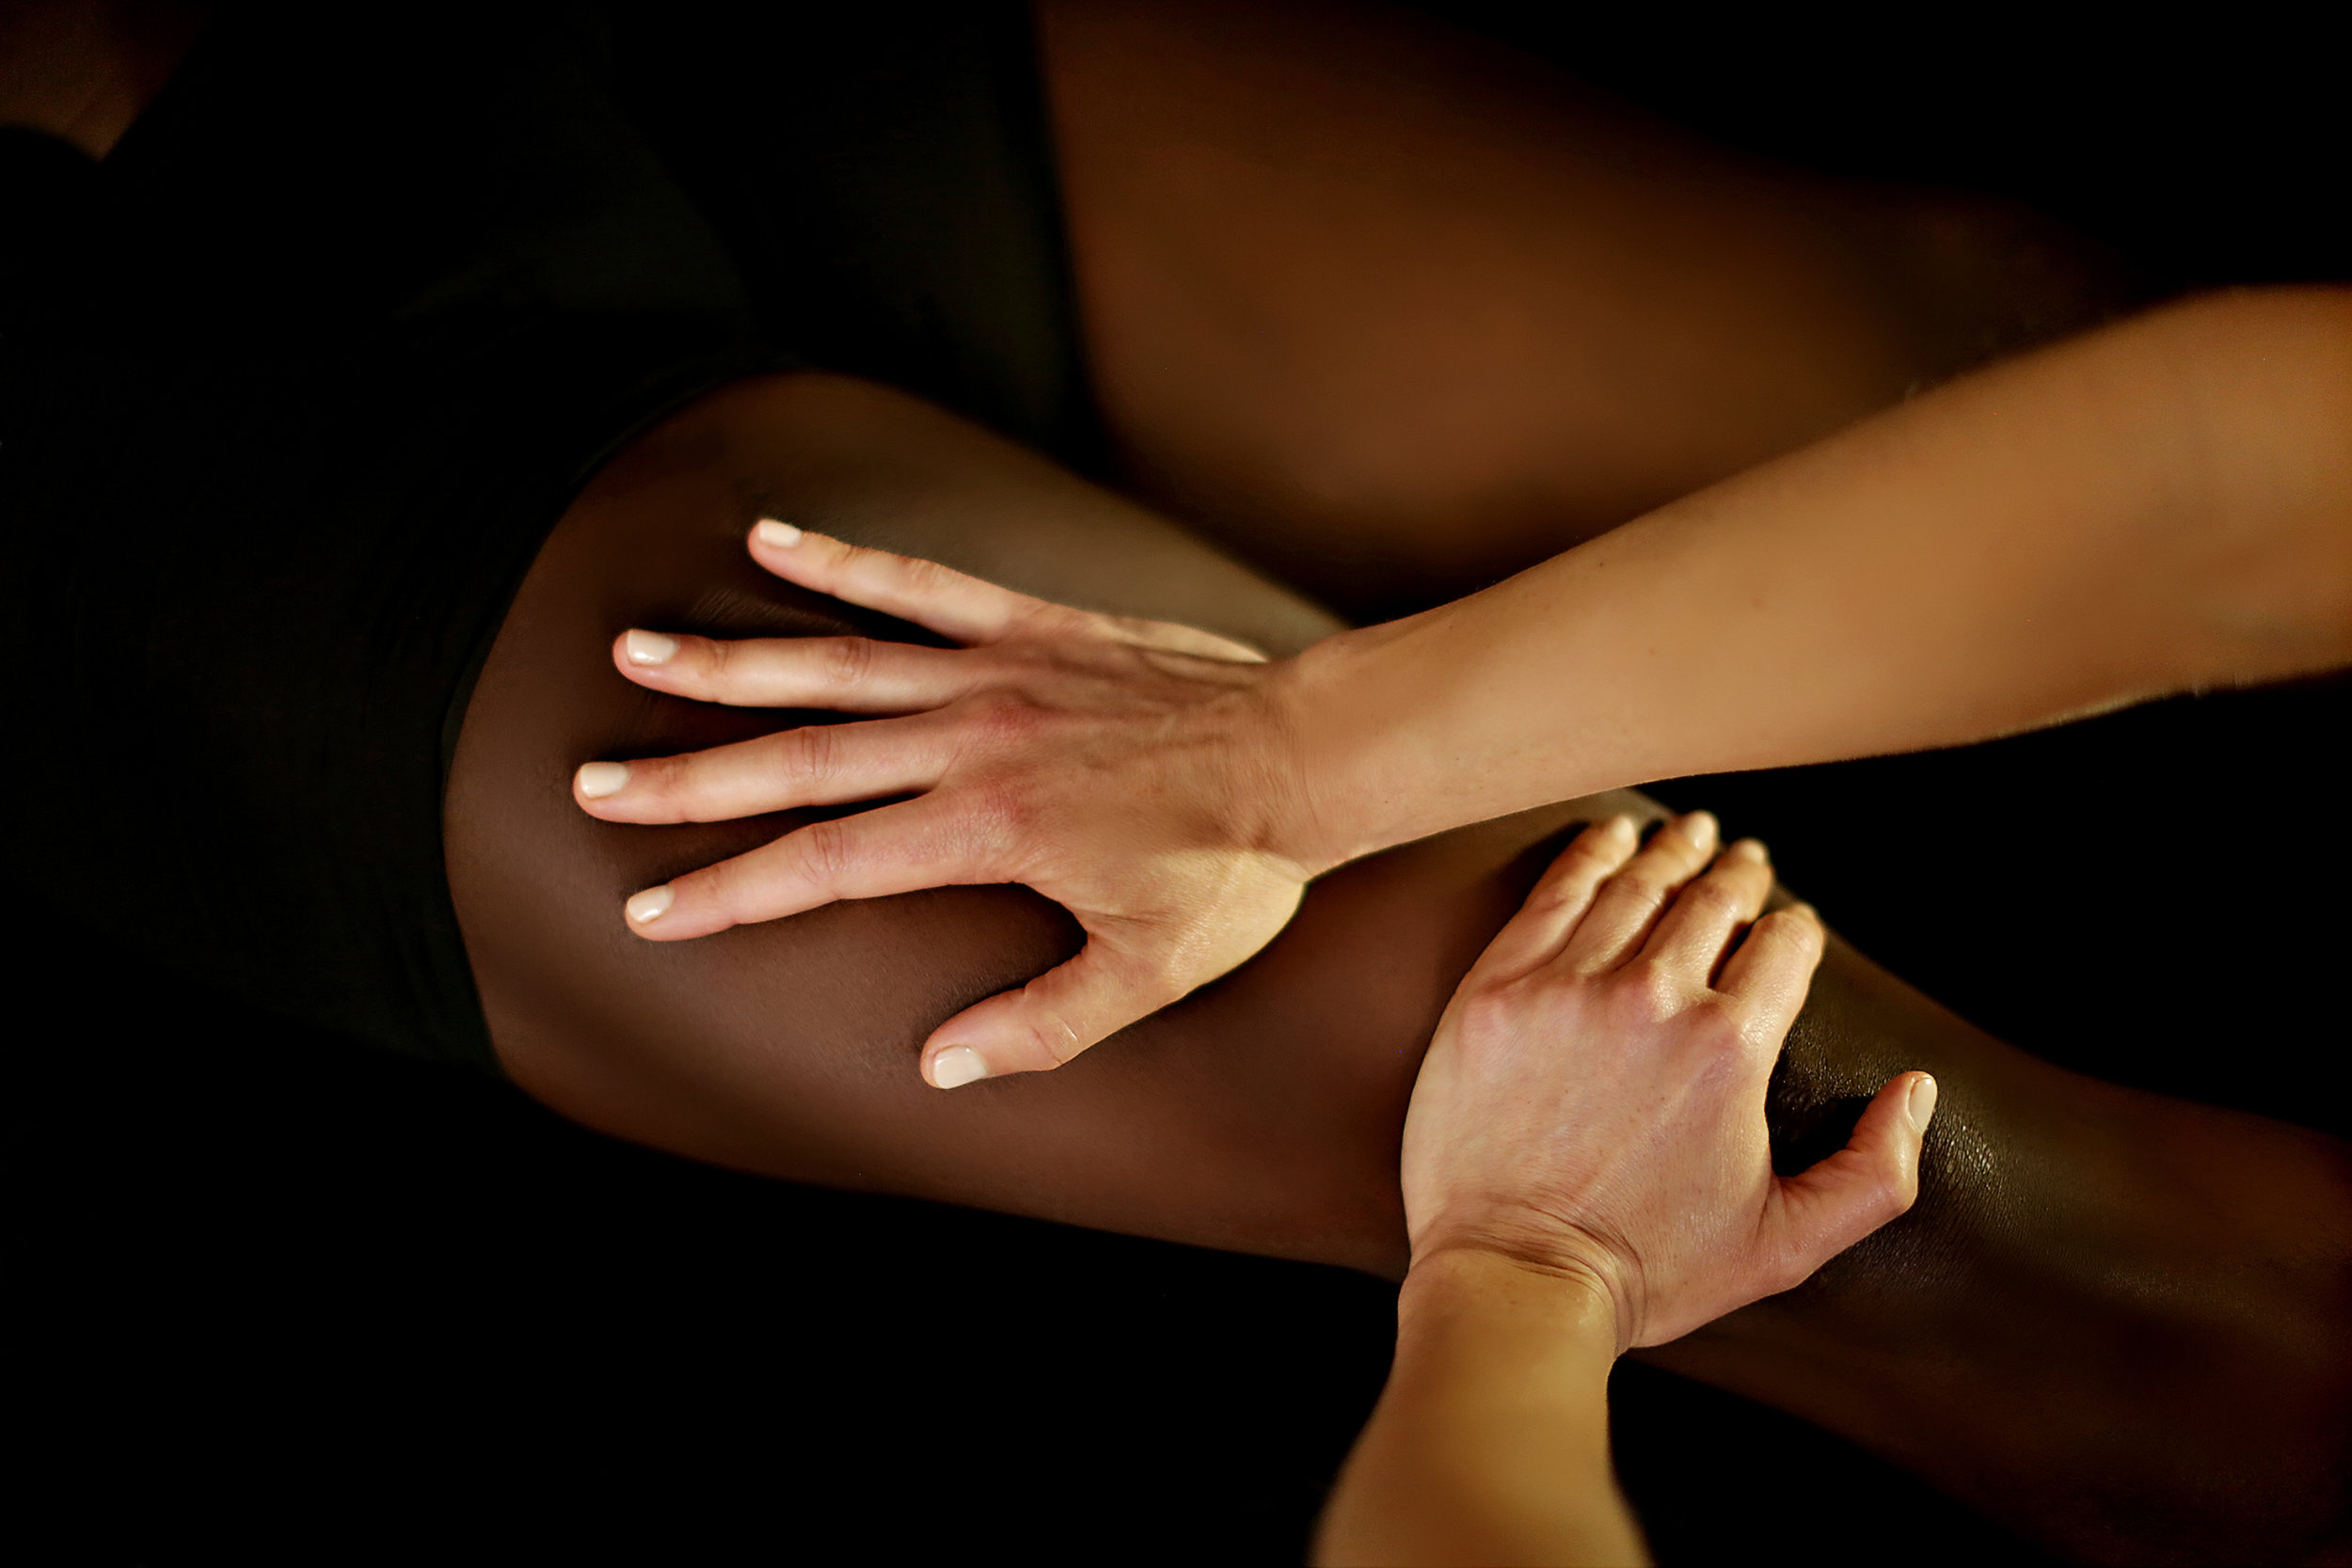 Used to relieve pain, stress and tension. The sessions can be specifically designed for each person's individual needs and be holistic or more specific.